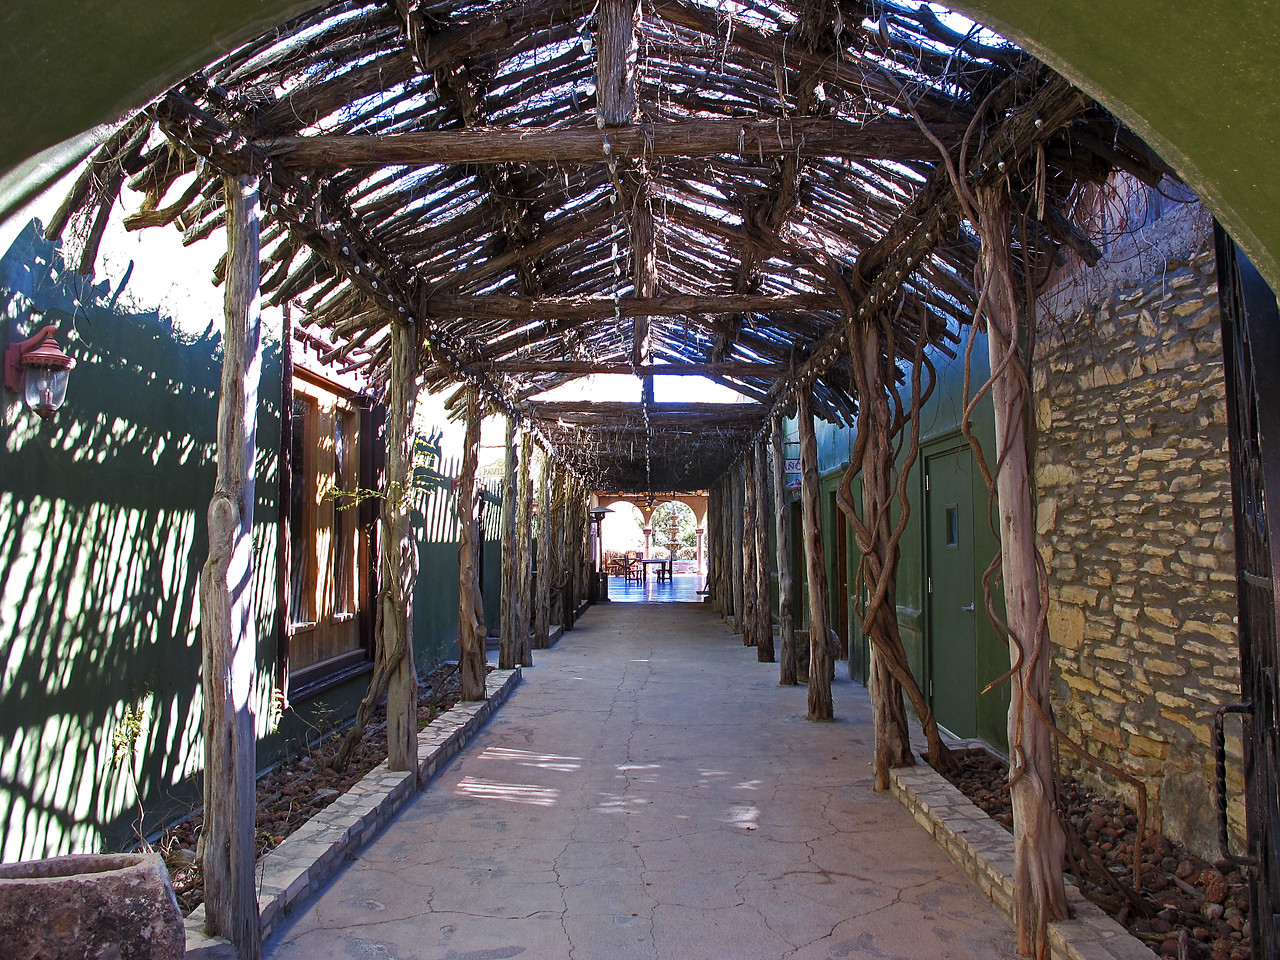 Walkway to The Thirsty Goat Saloon and the Candelilla Cafe.